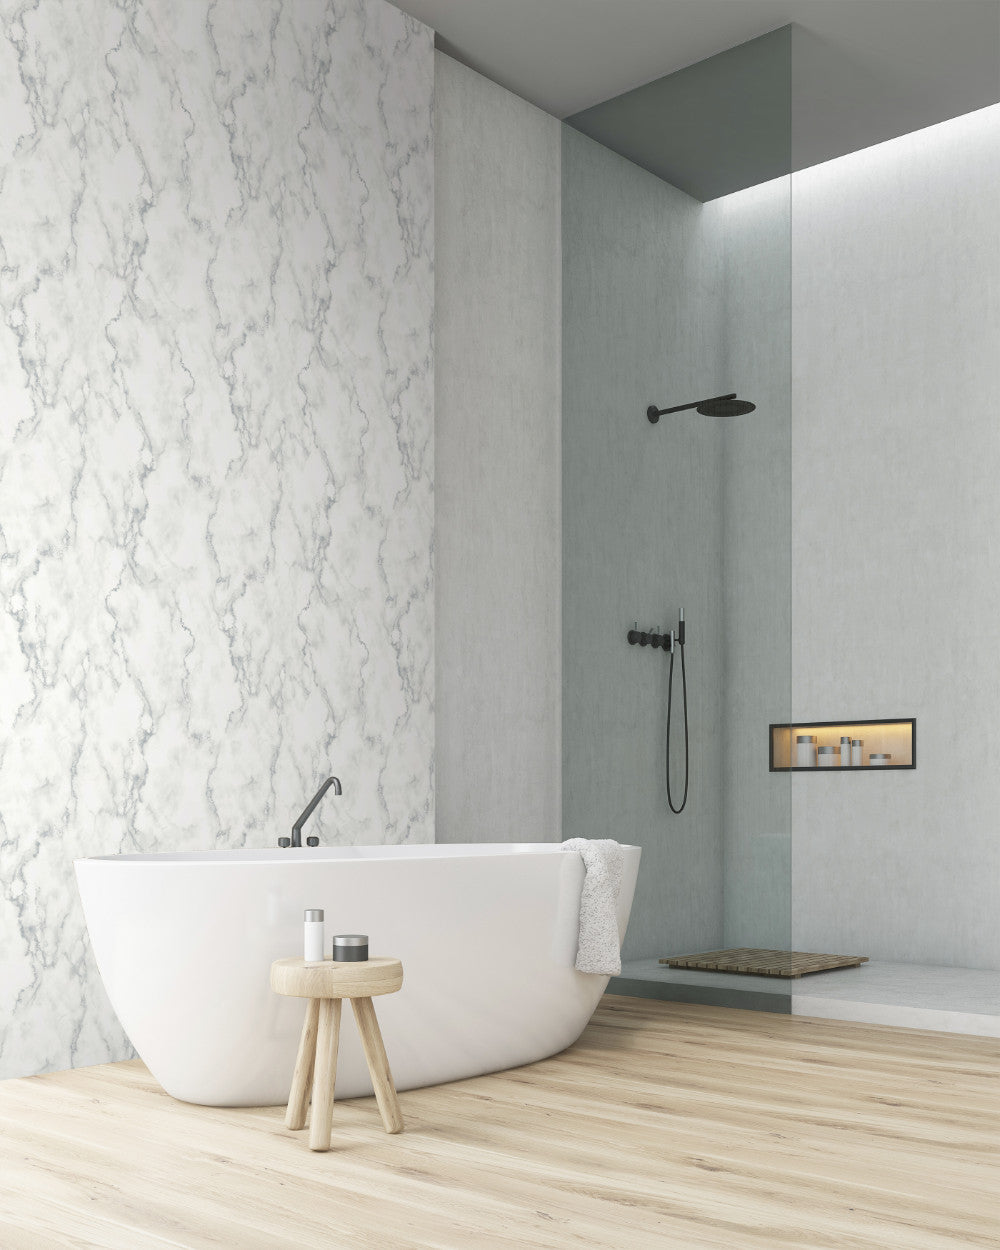 Marble Texture Peel And Stick Wallpaper In Grey And White By